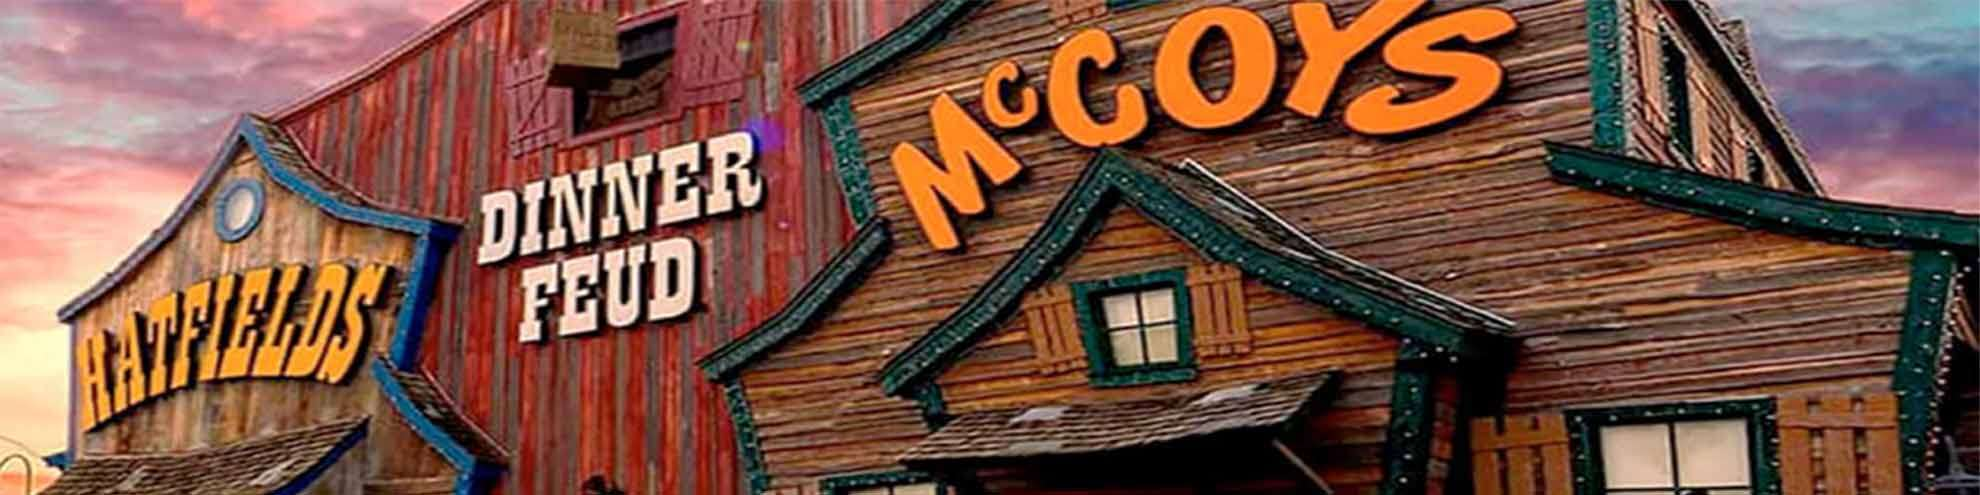 Hatfield McCoy Dinner Show discount tickets